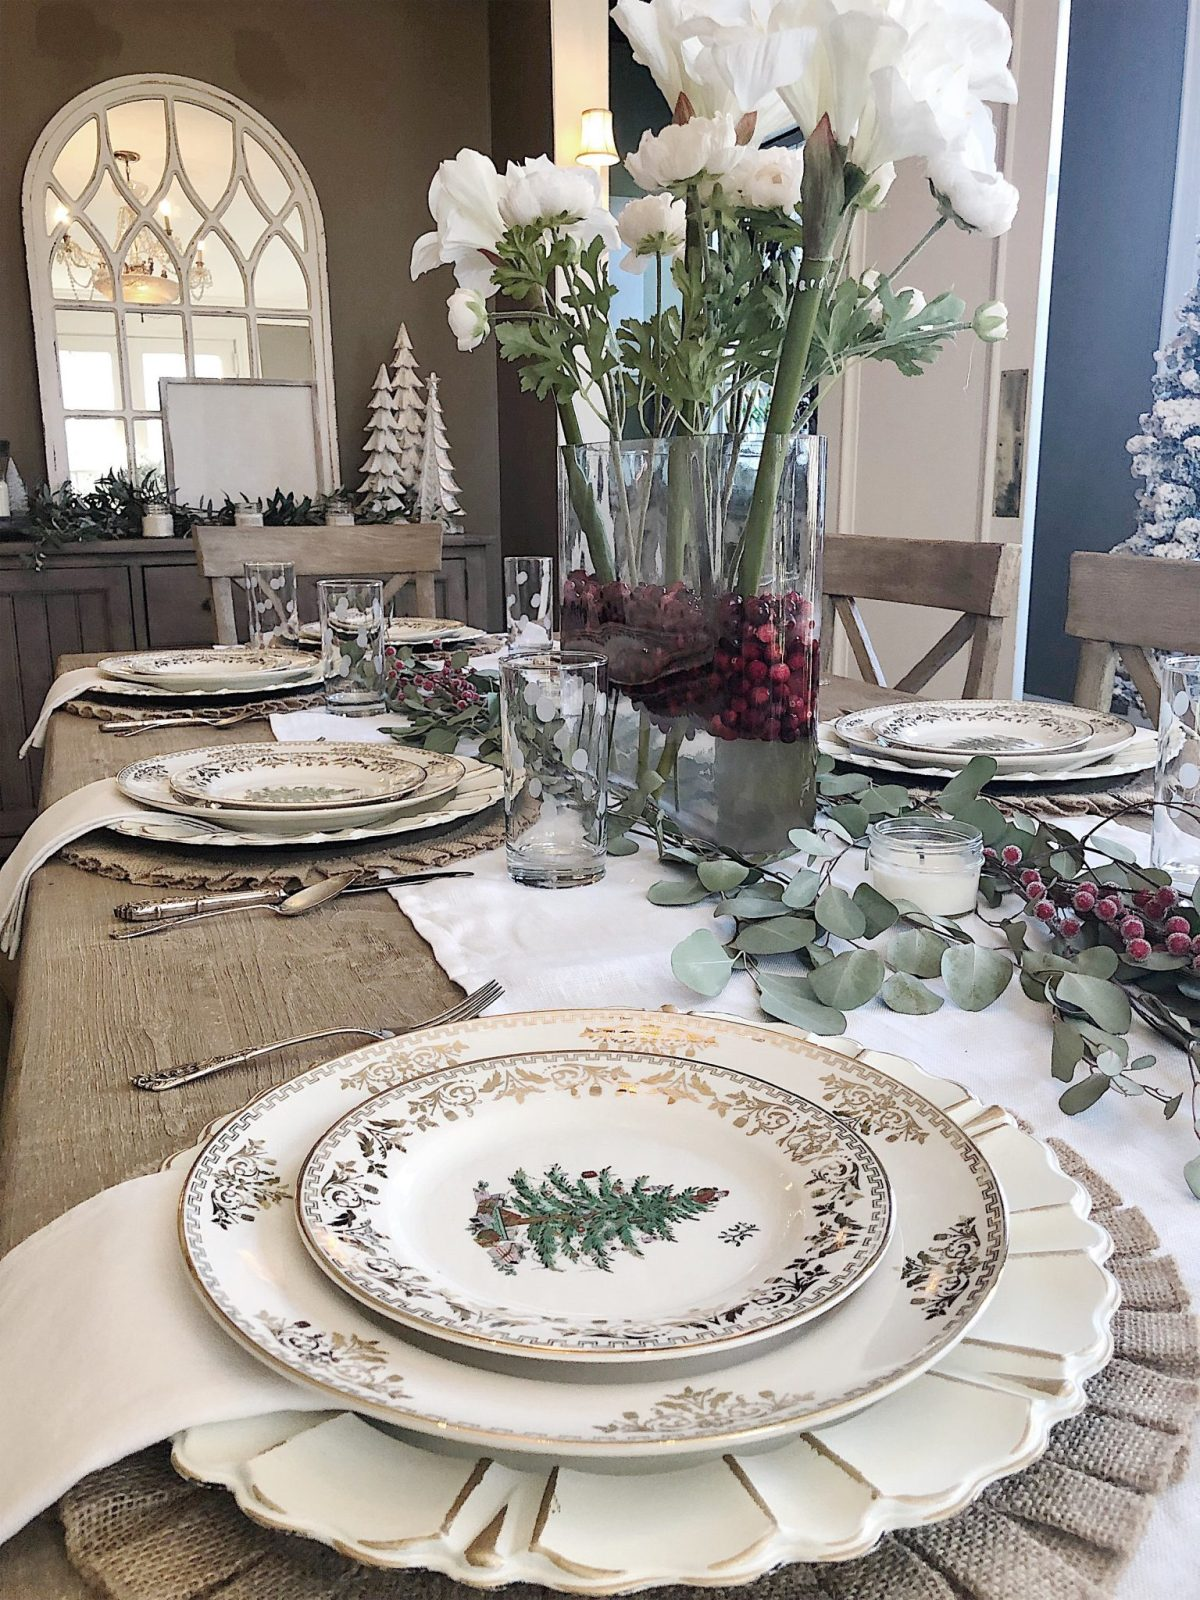 sharing christmas traditions Archives - My 100 Year Old Home